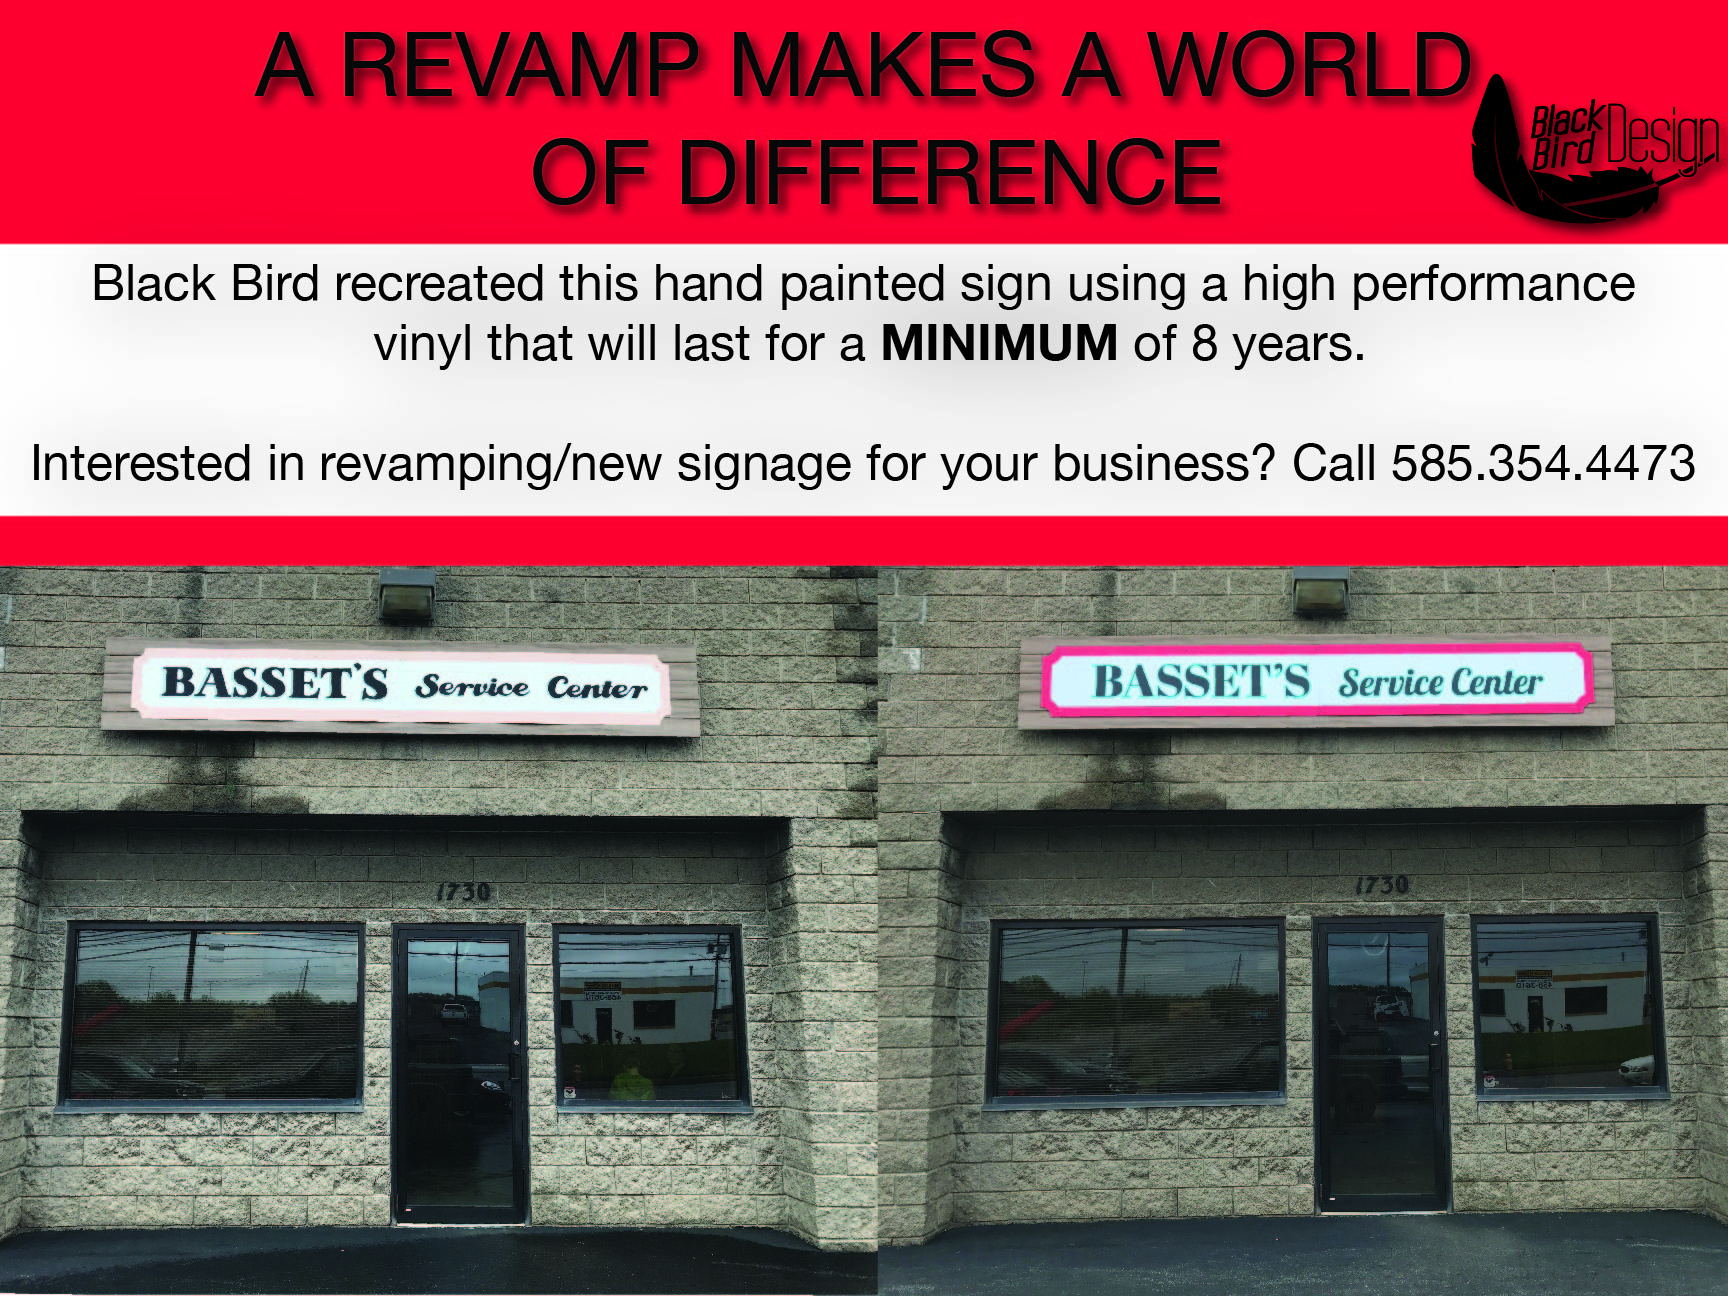 Looking to Revamp Your Signage?